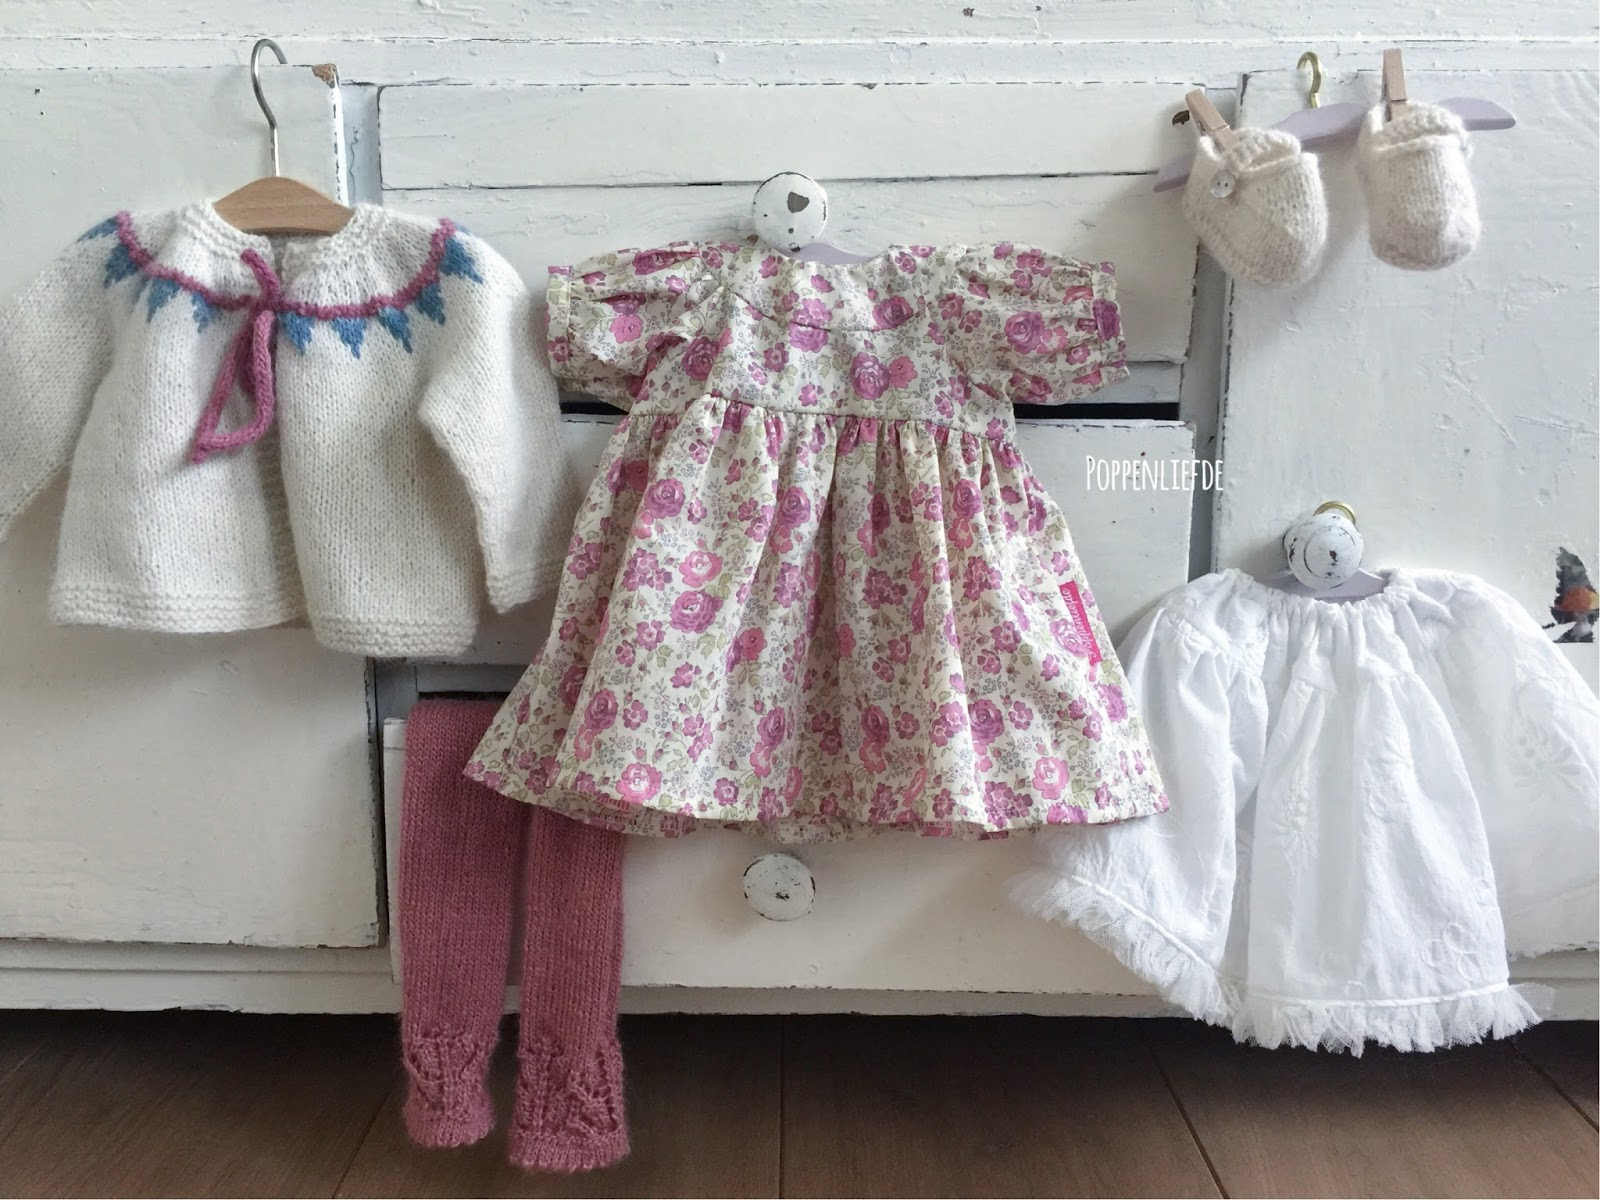 Poppenliefde doll clothing set